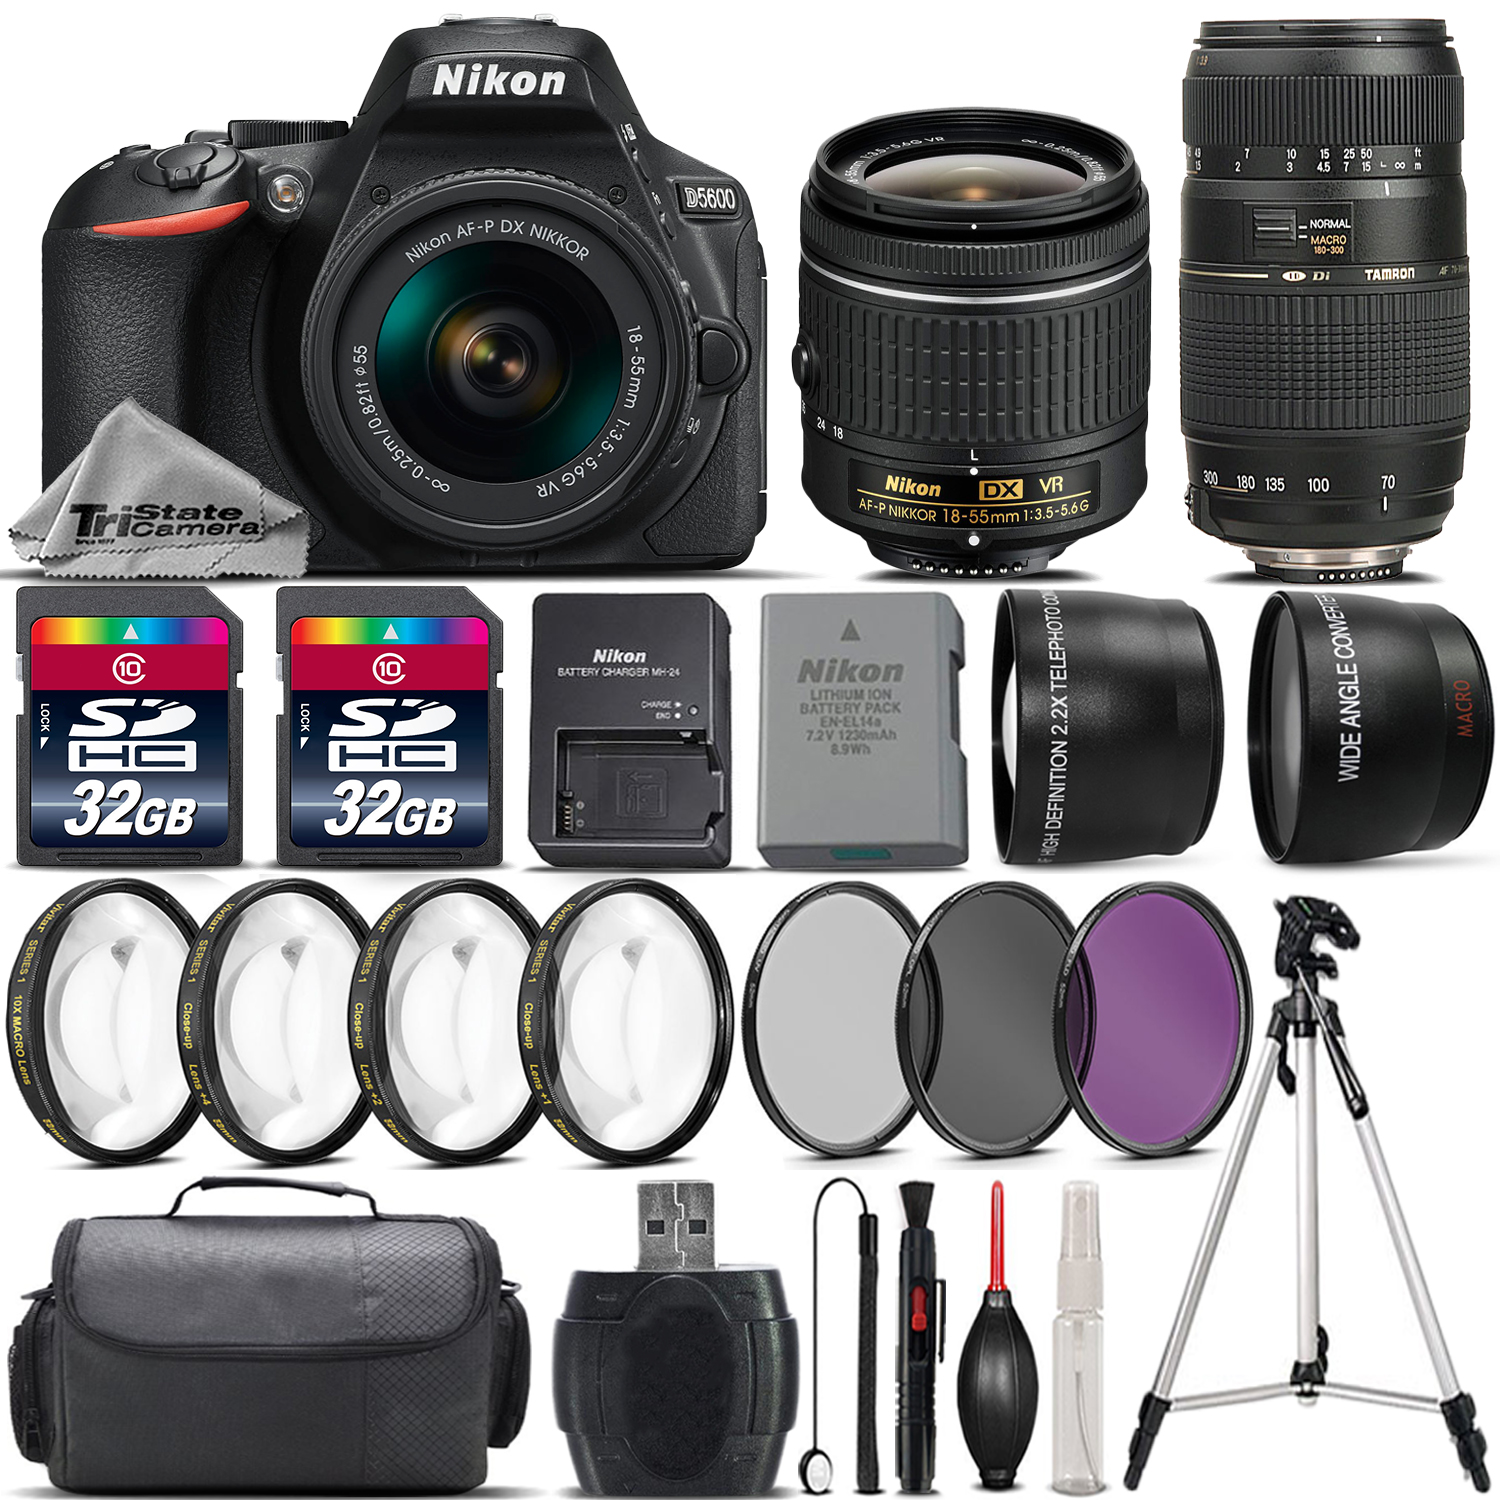 Nikon D5600 DSLR Camera with 18-55mm VR Lens + 70-300 Lens + 64GB Bundle Kit